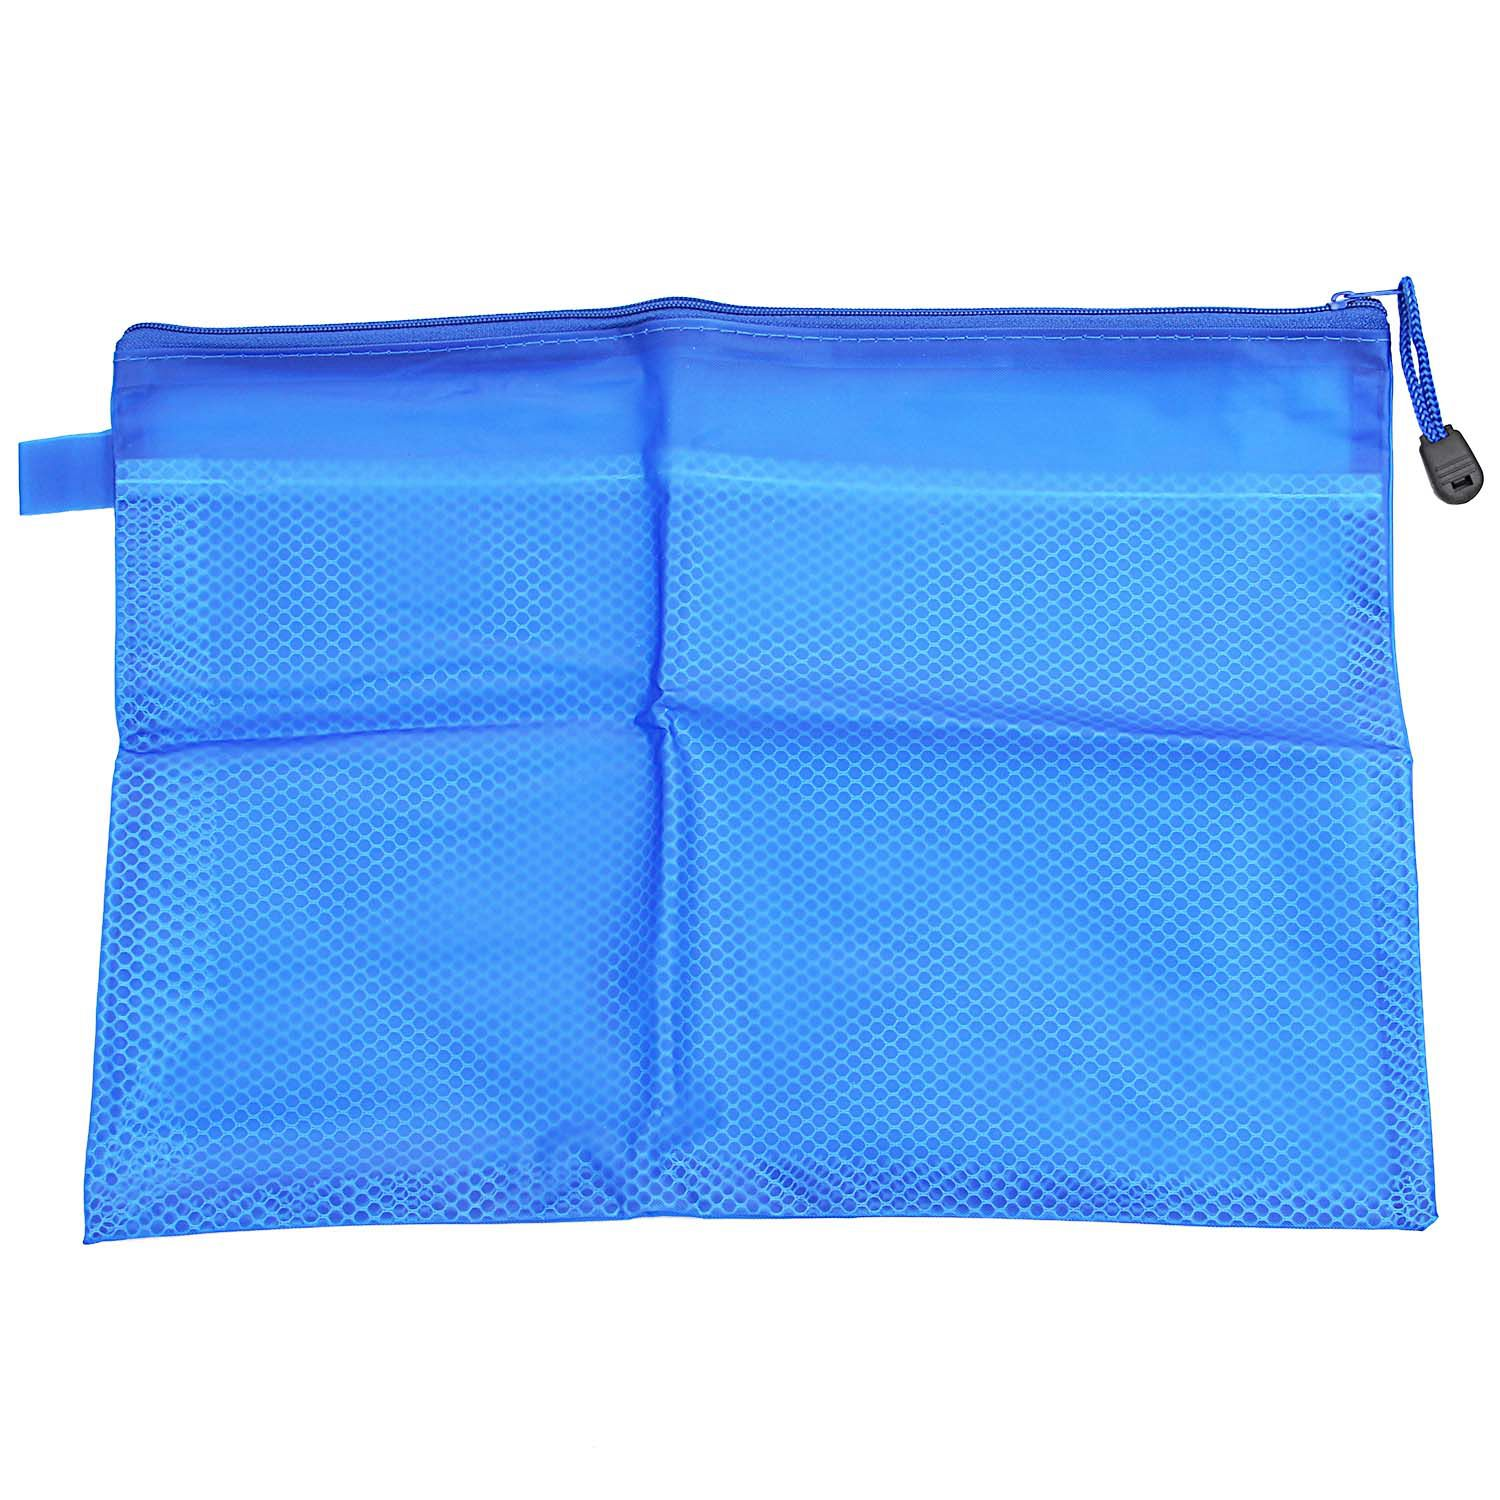 A4 Fabric Zip Portfolio Bags Filing Document Pencil Storage Holder, A4 Blue